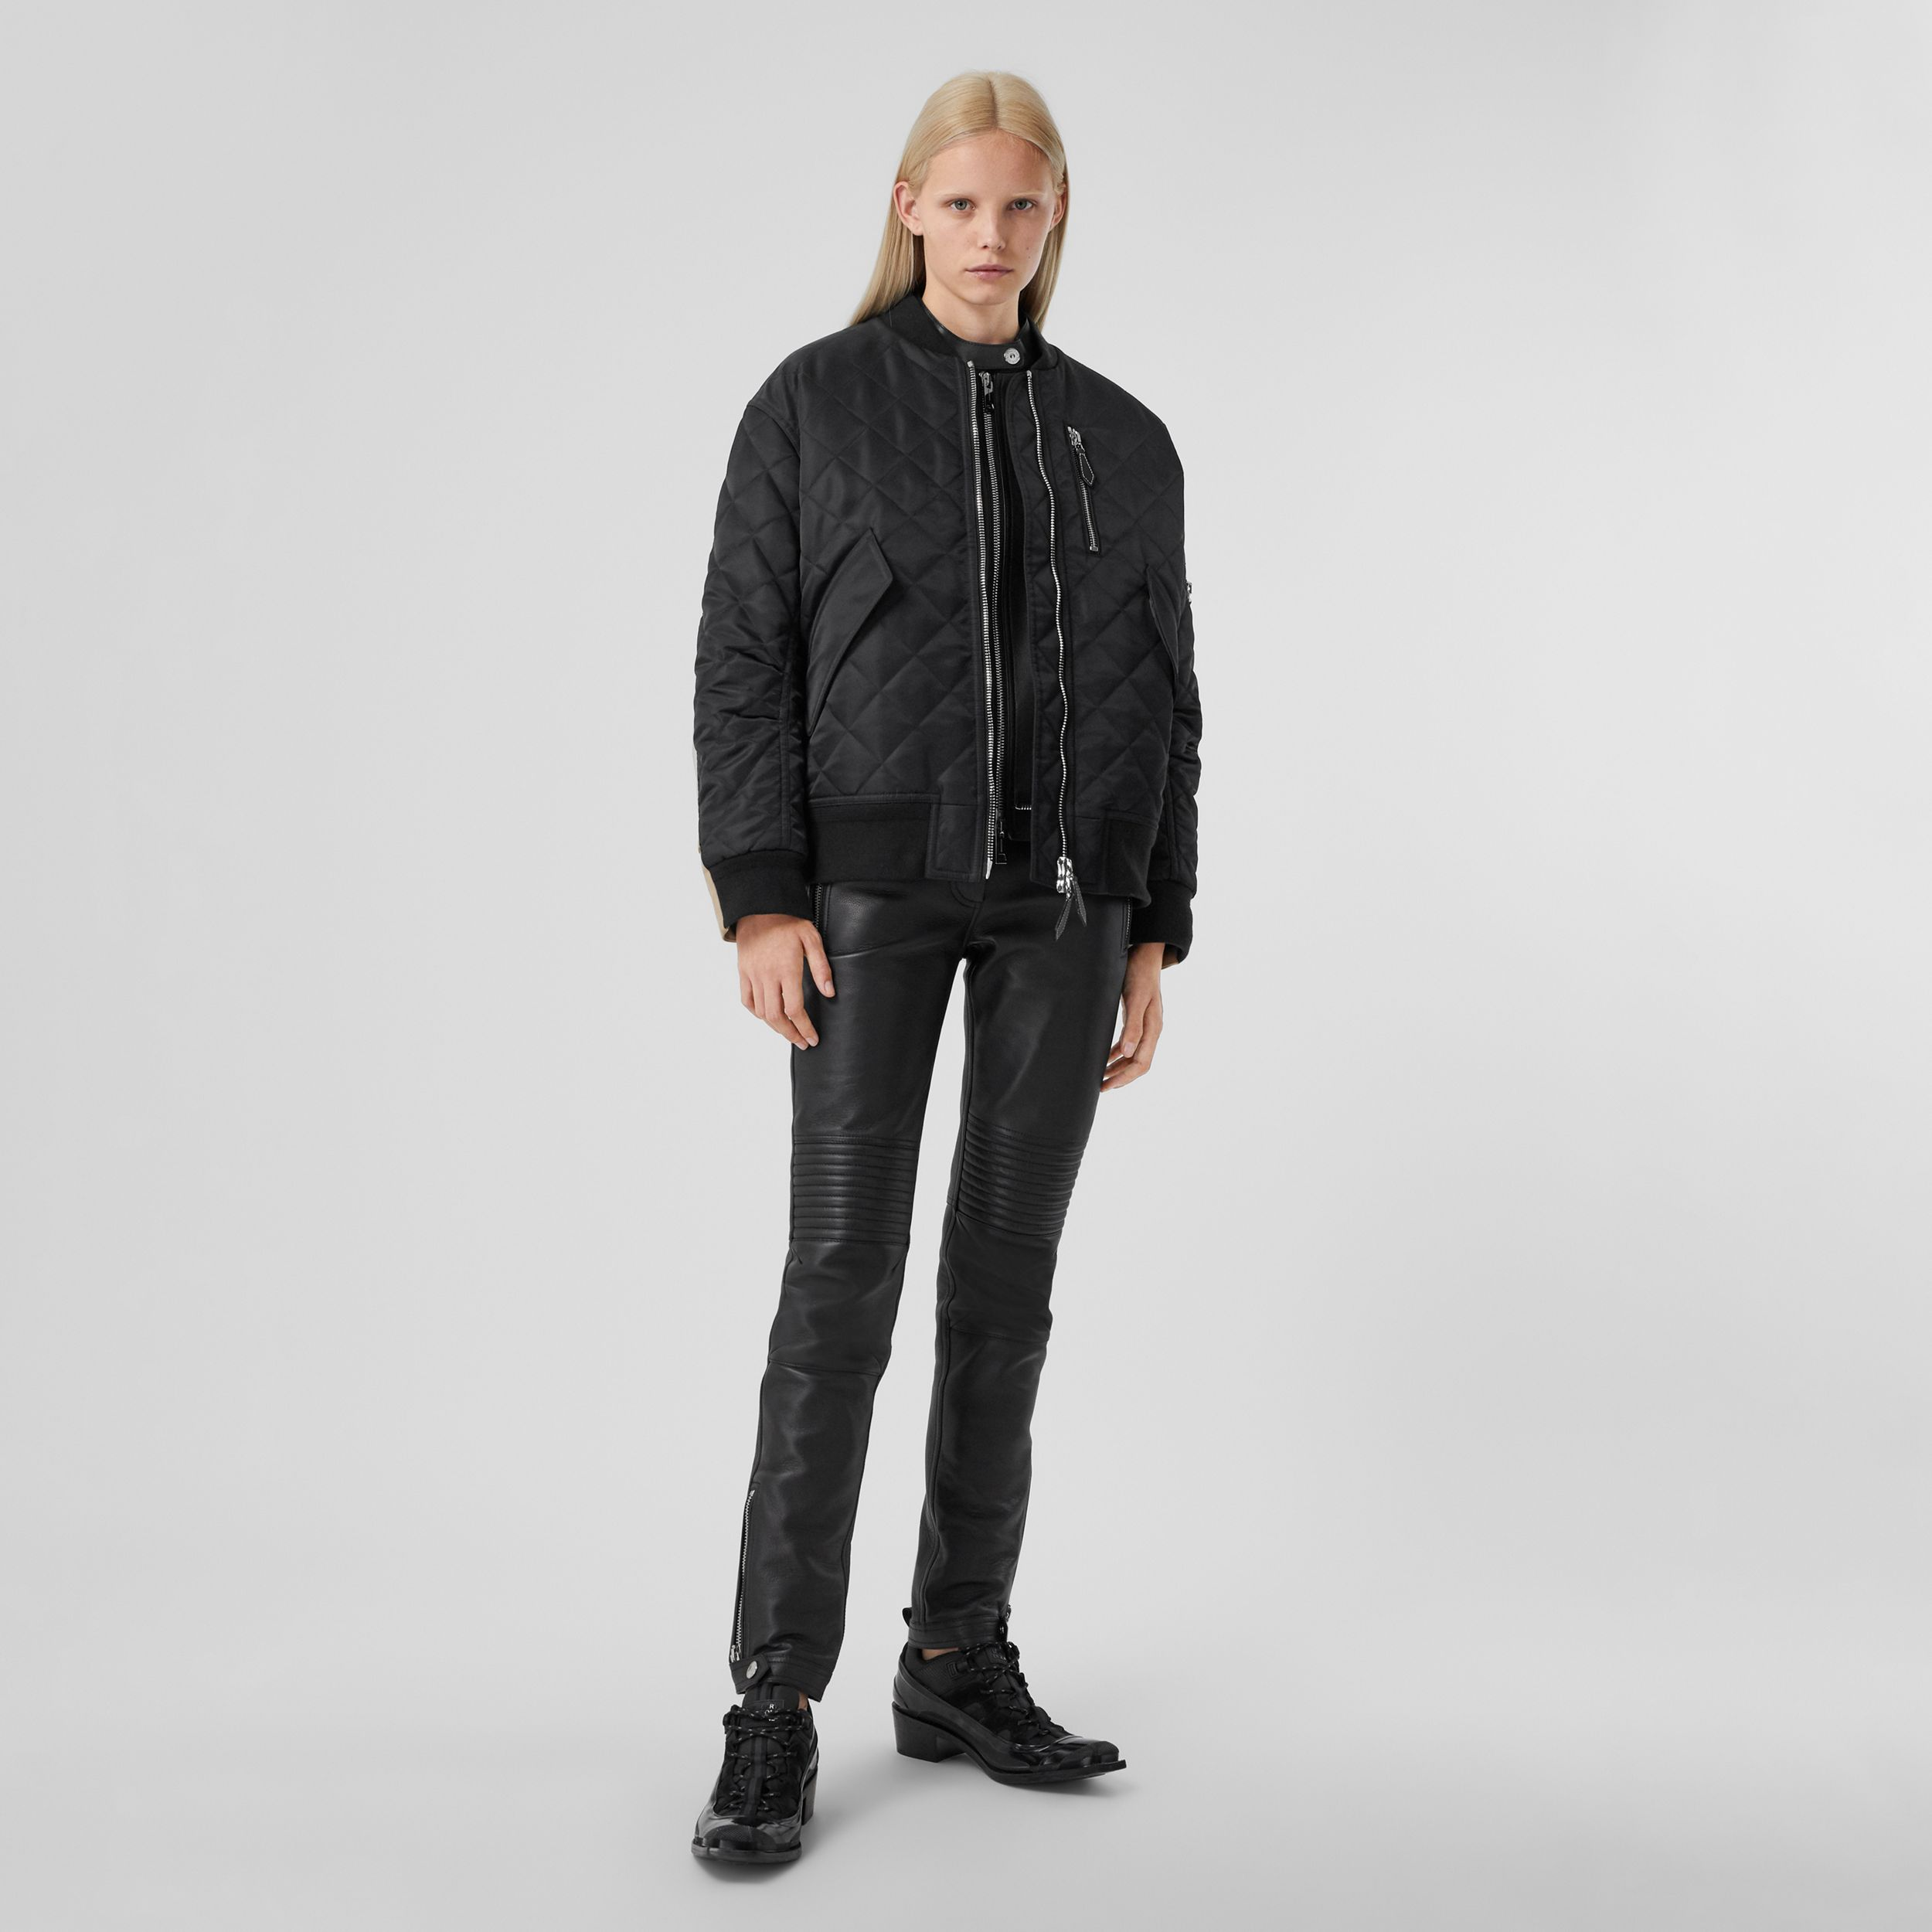 Diamond Quilted Nylon and Cotton Bomber Jacket in Black | Burberry - 1